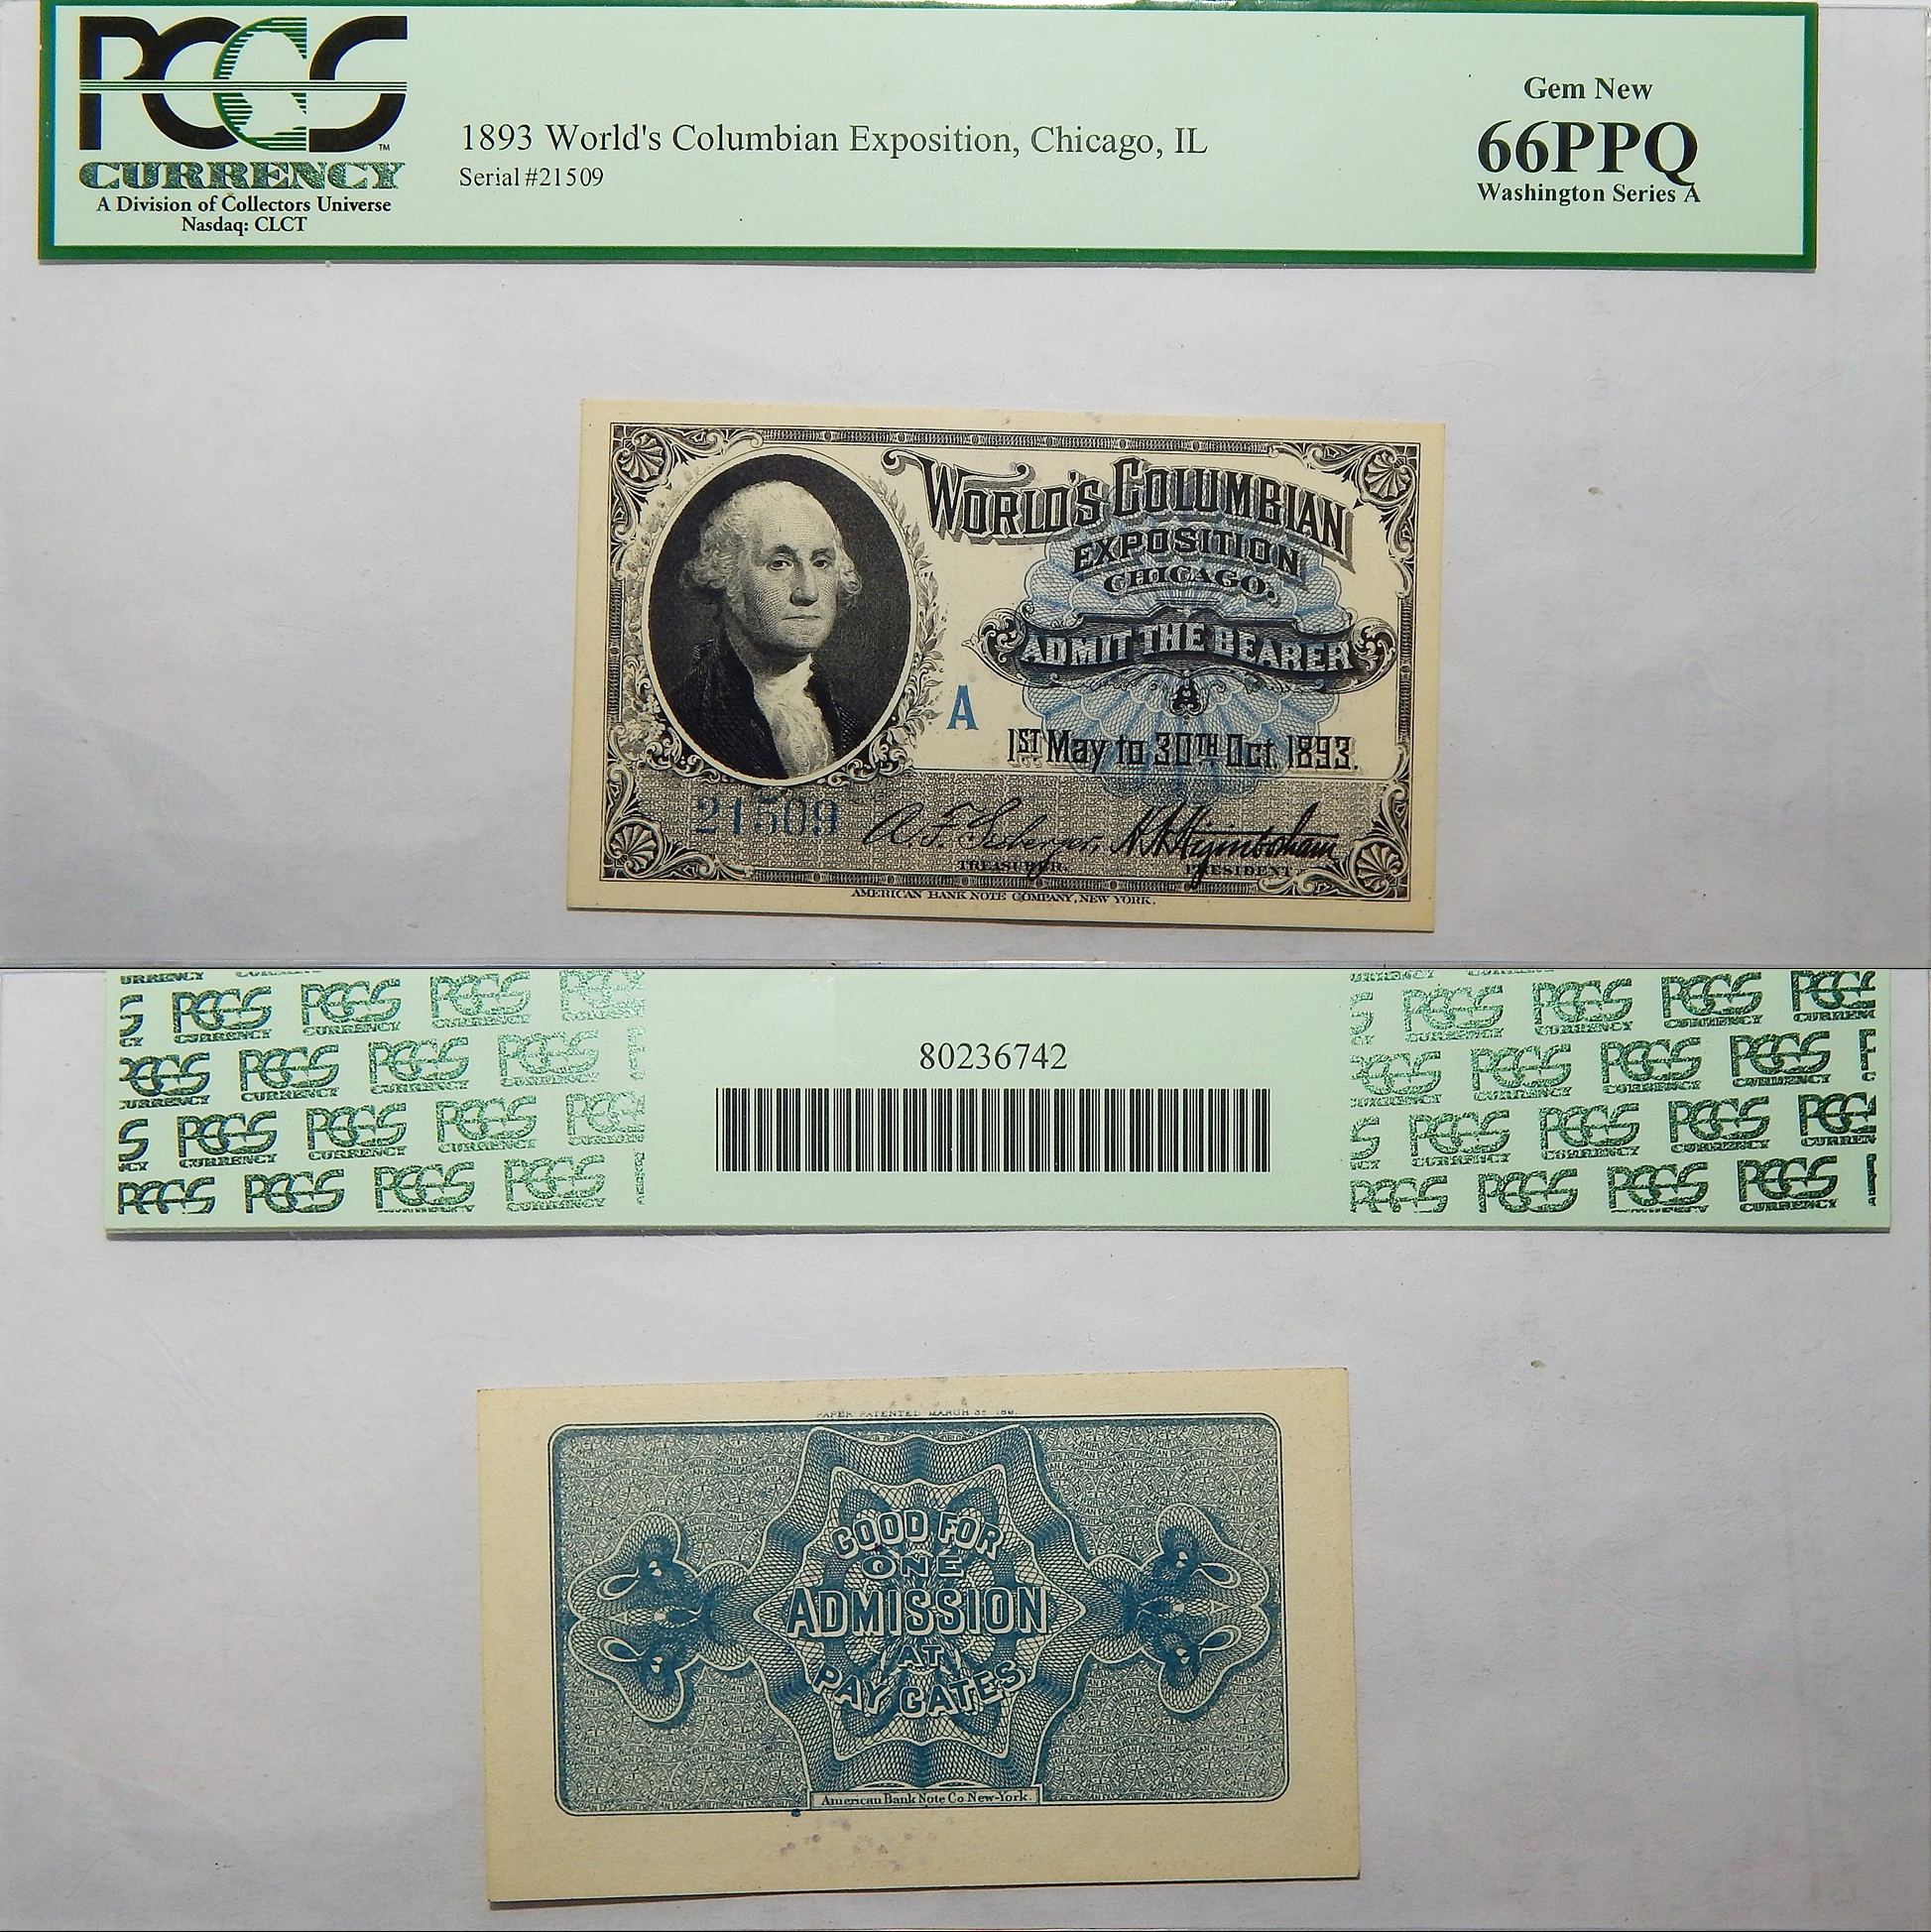 1893 Chief Series A World/'s Columbian Expo Ticket Chicago,IL PCGS Gem New 66 PPQ